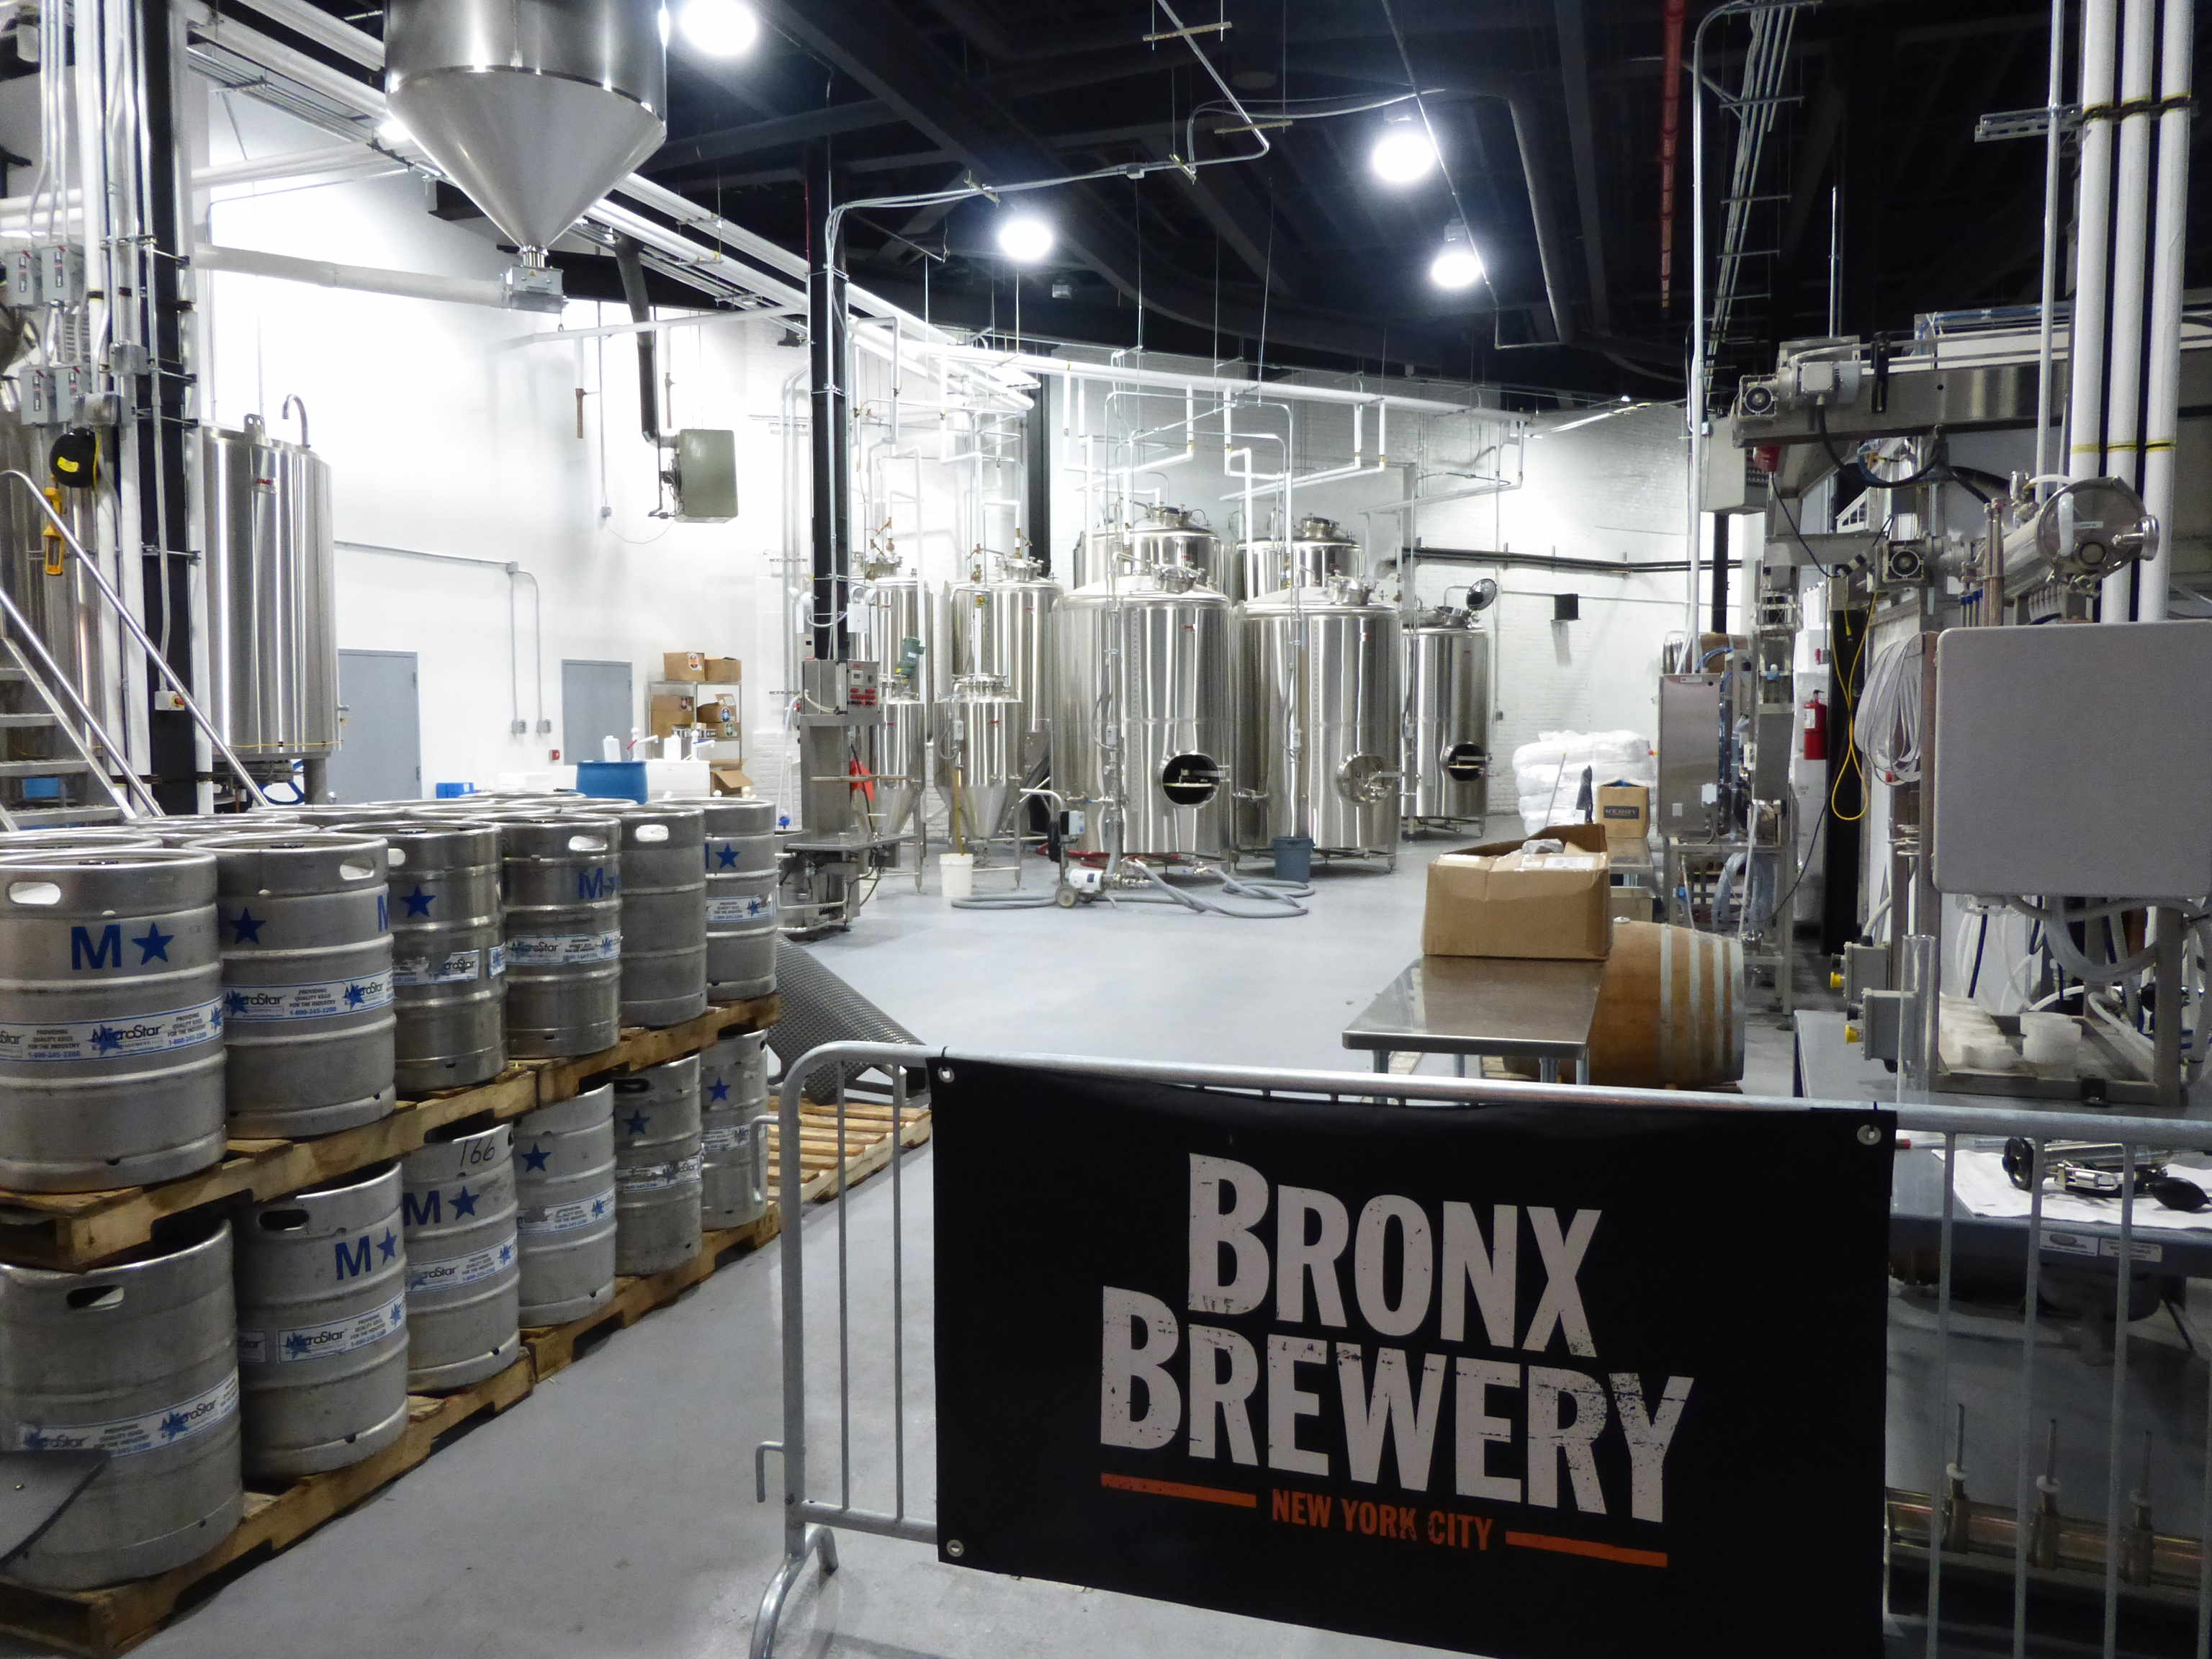 The Bronx brewery and tasting room. The Bronx, NYC, US. Established in 2011. Photo: author